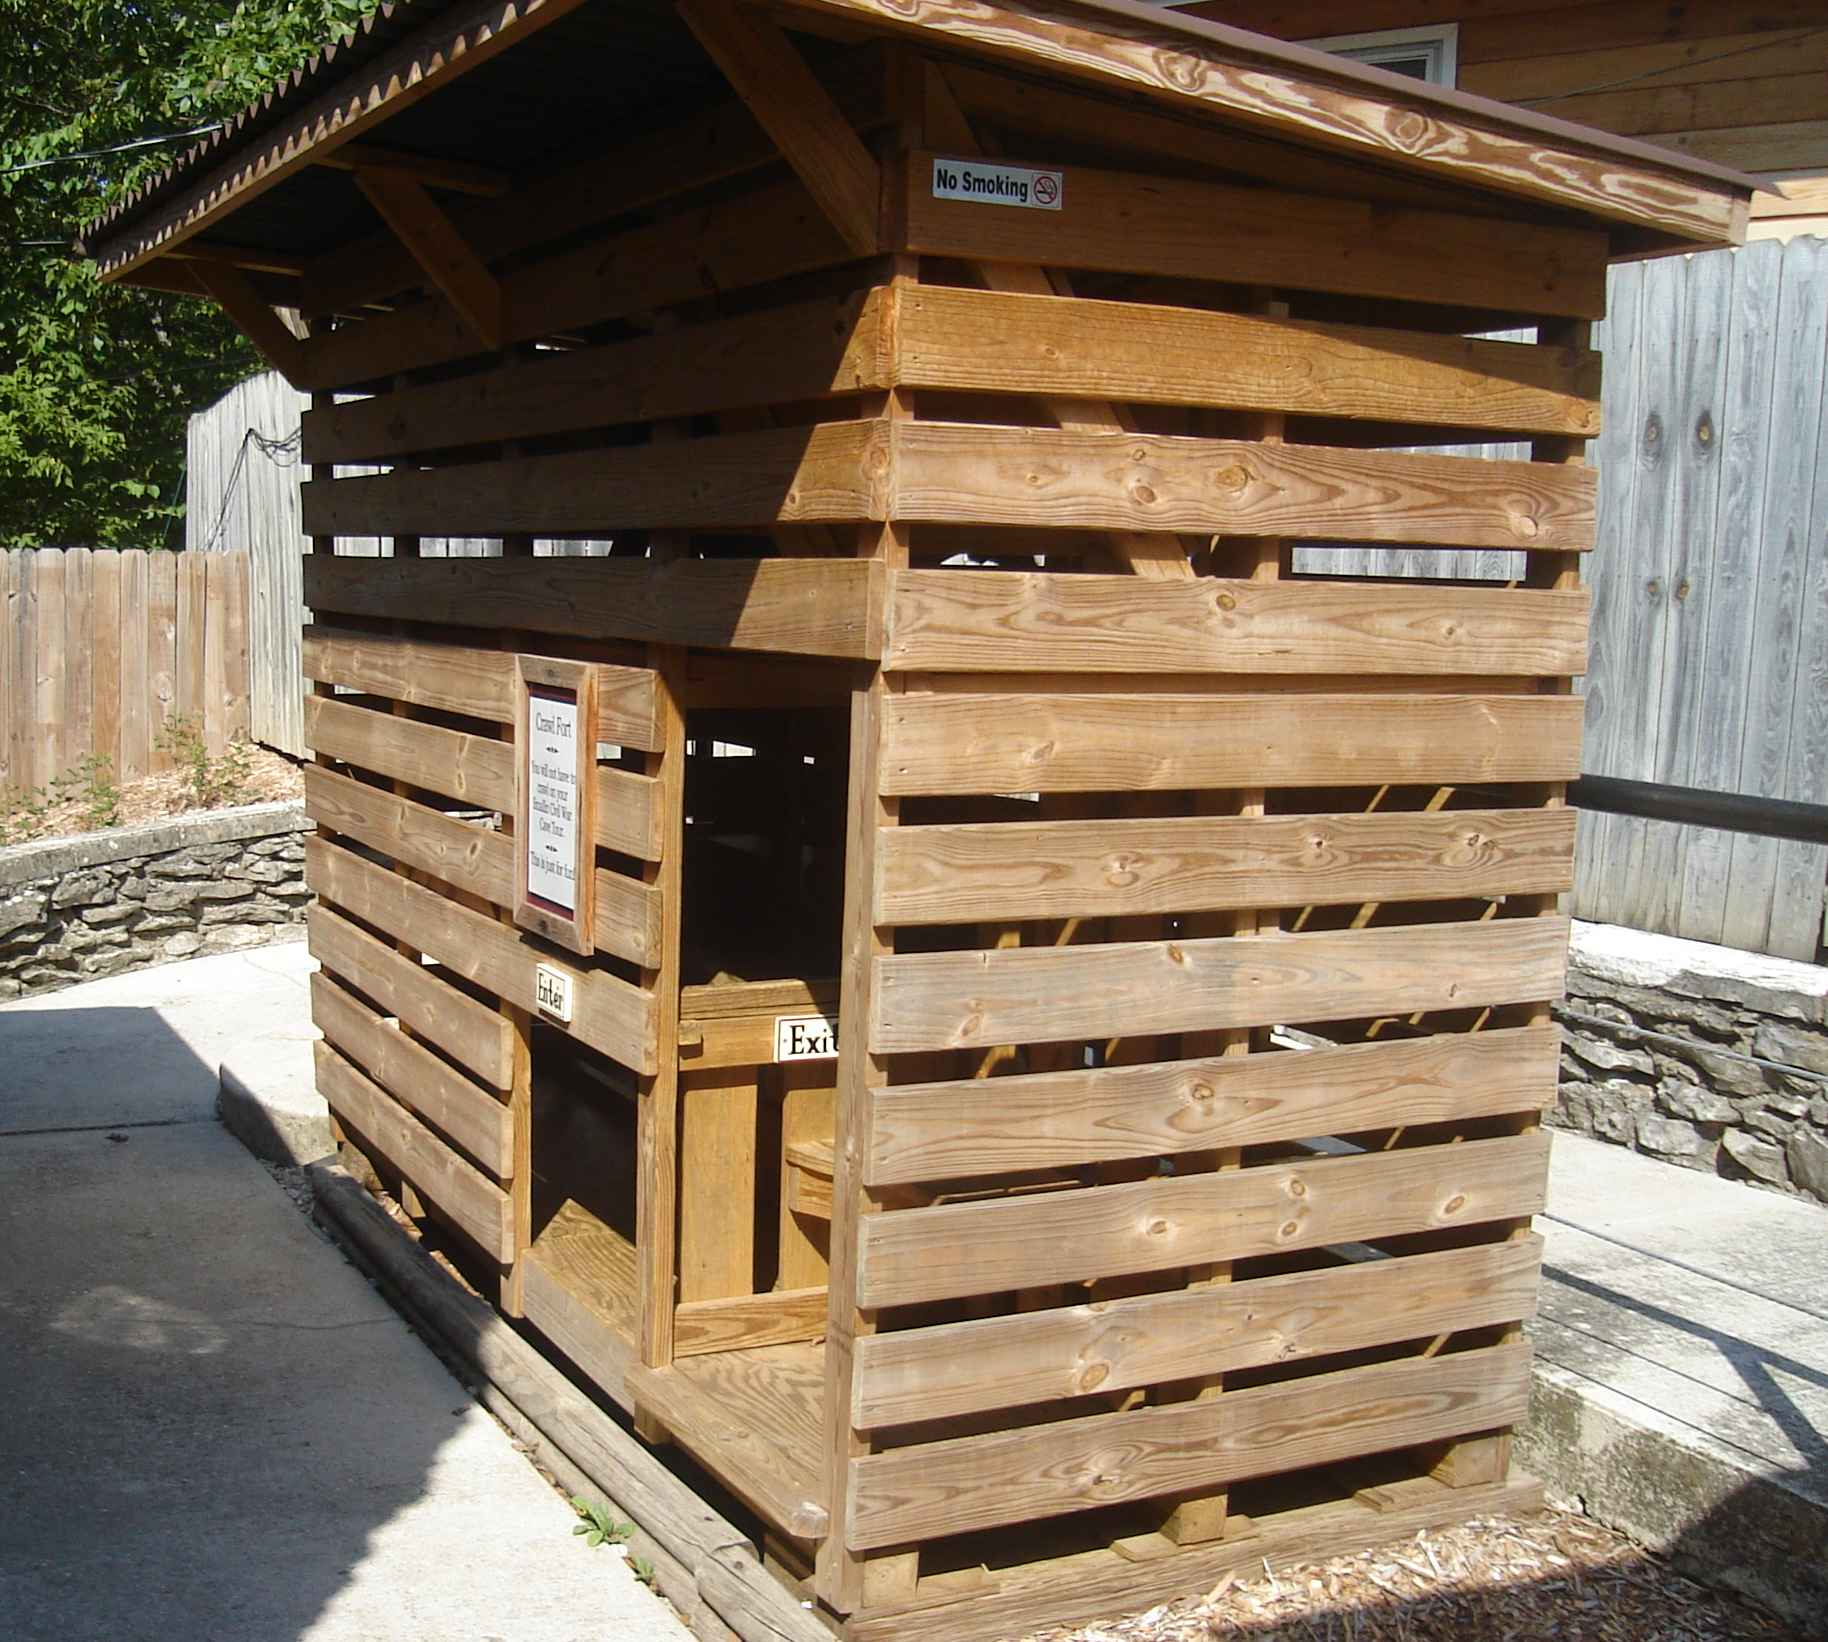 Smallin Cave crawl box